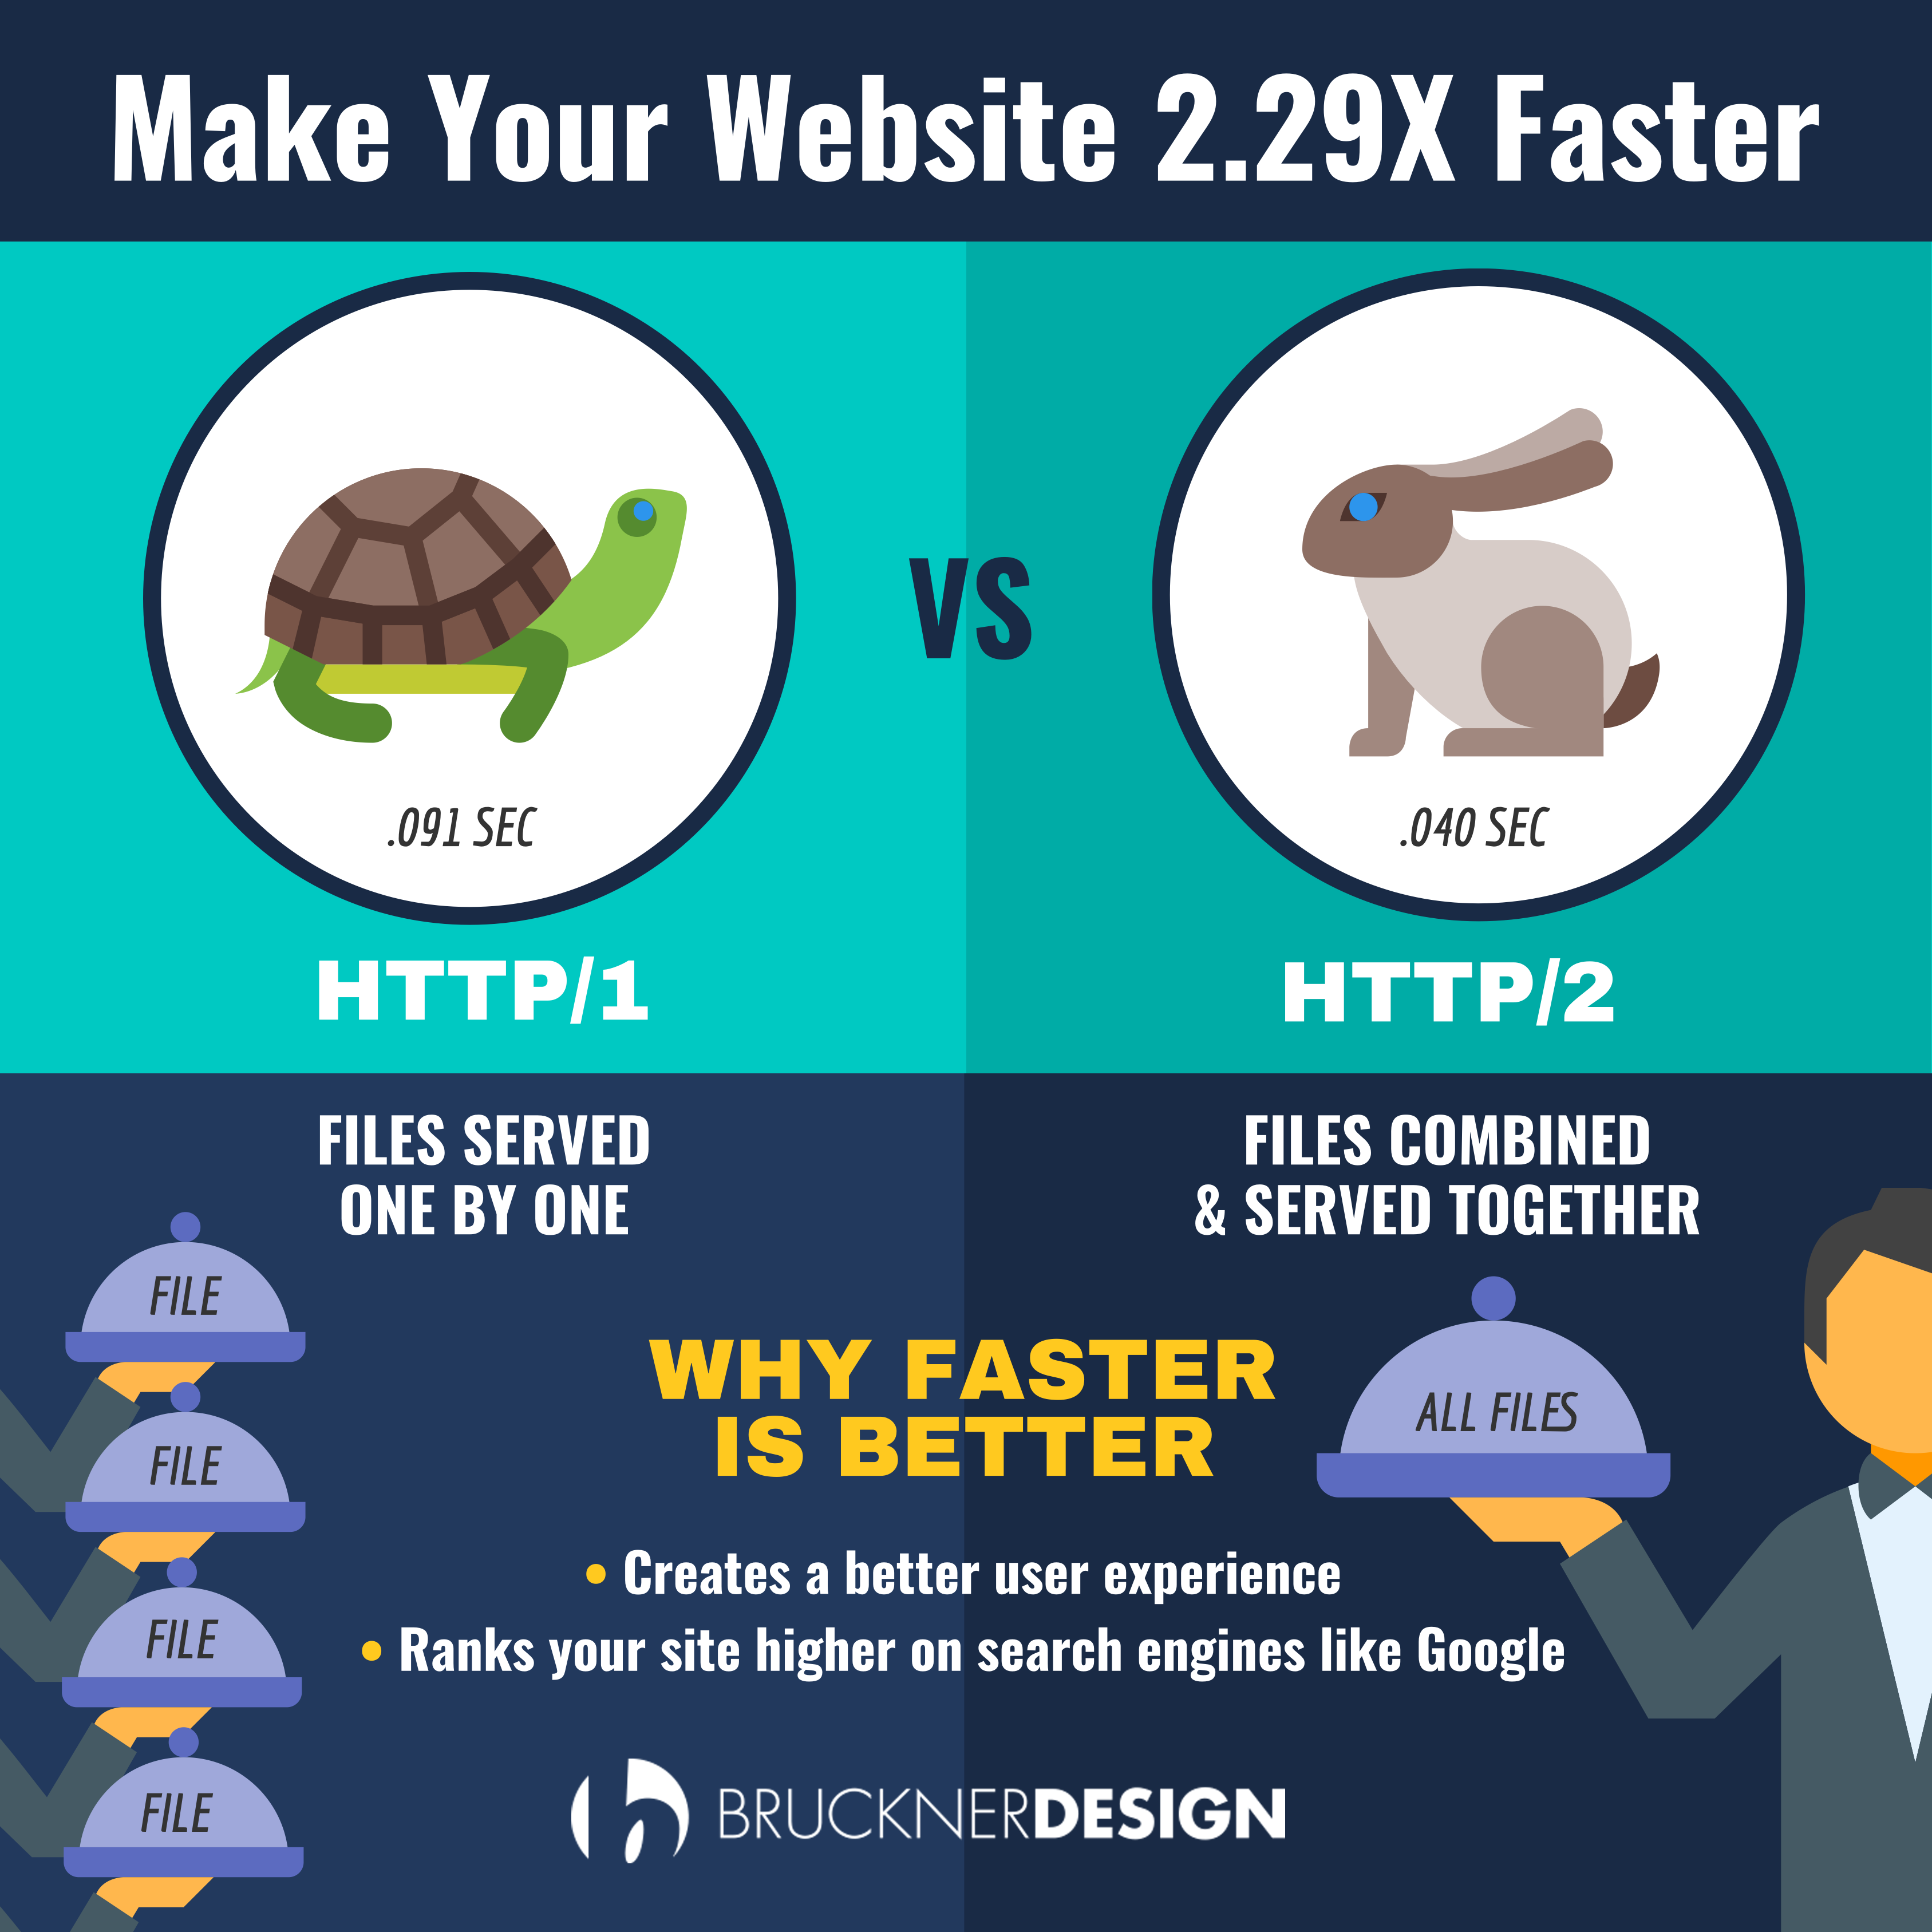 Make Your Website More than 2X Faster